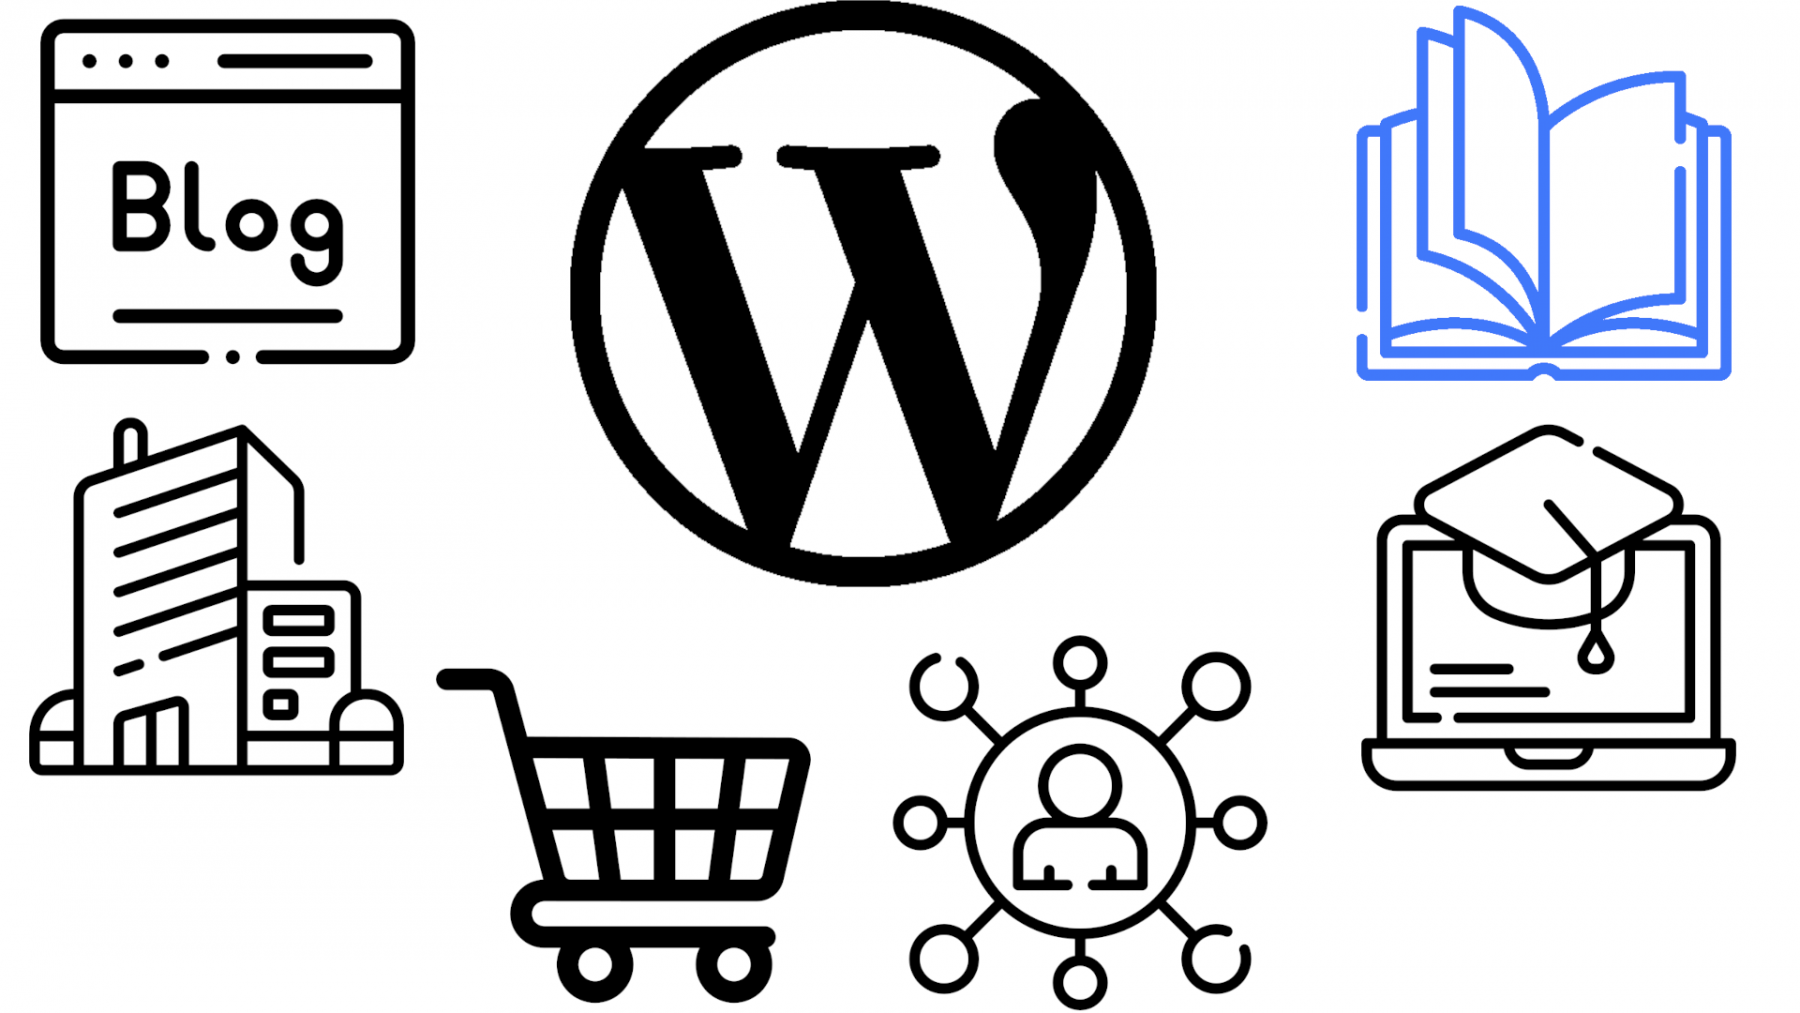 WordPress is used for blogging, flagship websites, e-commerce, social networks, and higher education... so why not books and documents?